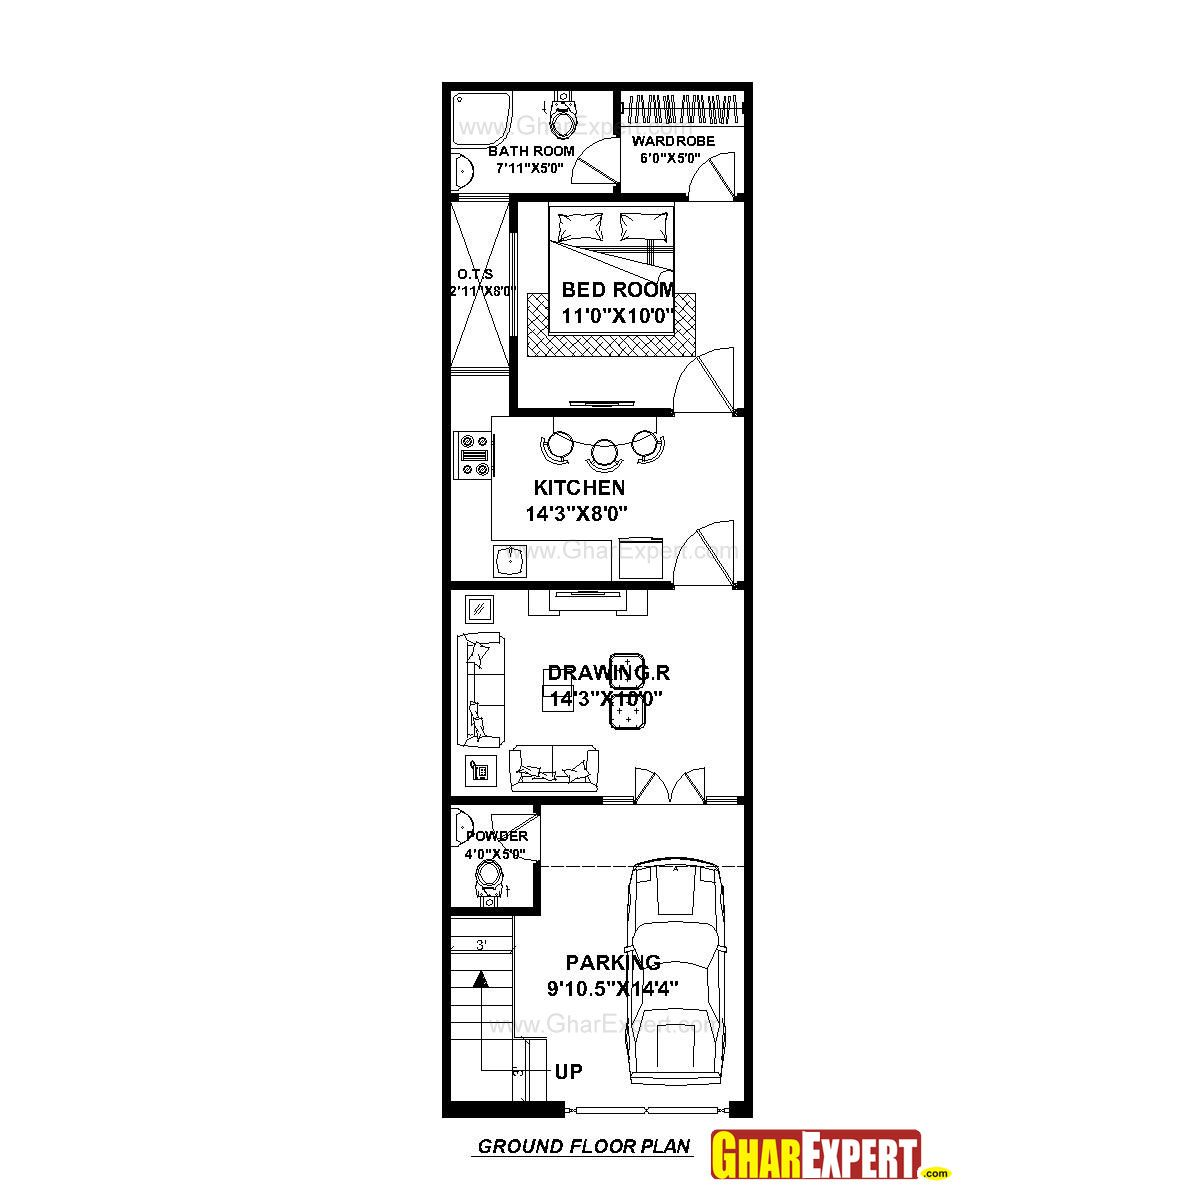 House Plan For 33 Feet By 40 Feet Plot Plot Size 147: House Plan For 15 Feet By 50 Feet Plot (Plot Size 83